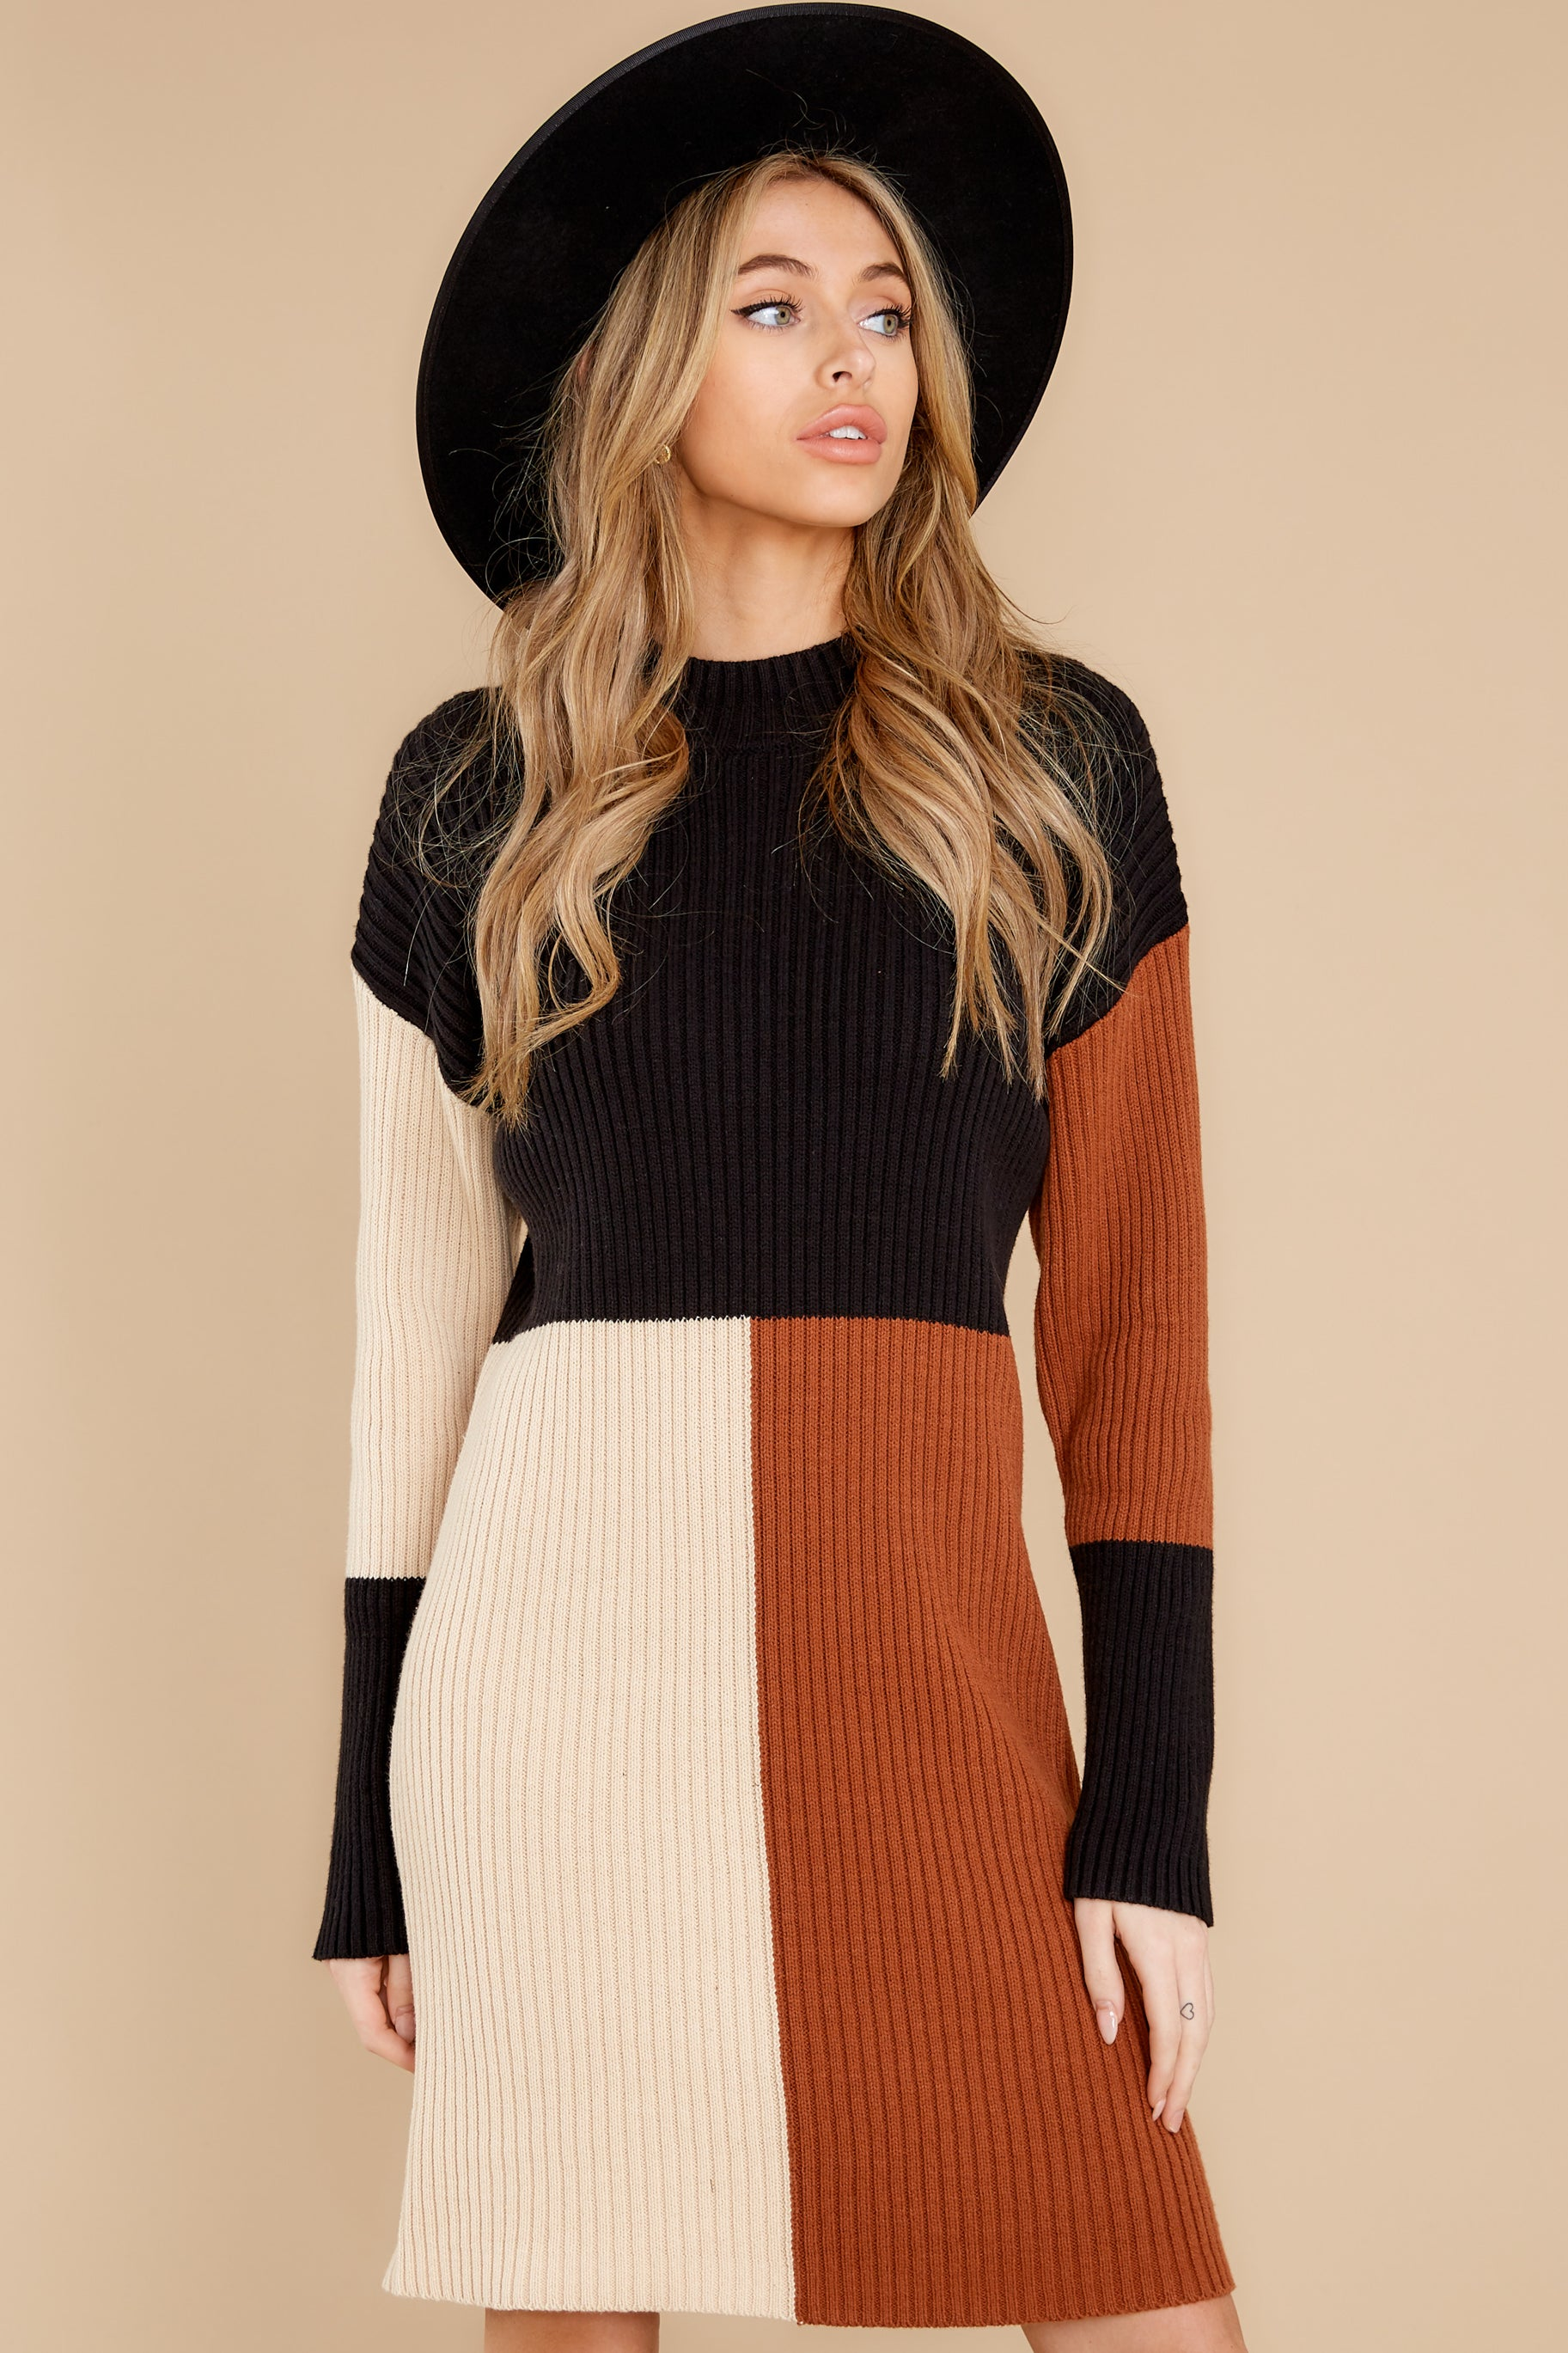 5 Around The Bend Black And Camel Sweater Dress at reddress.com